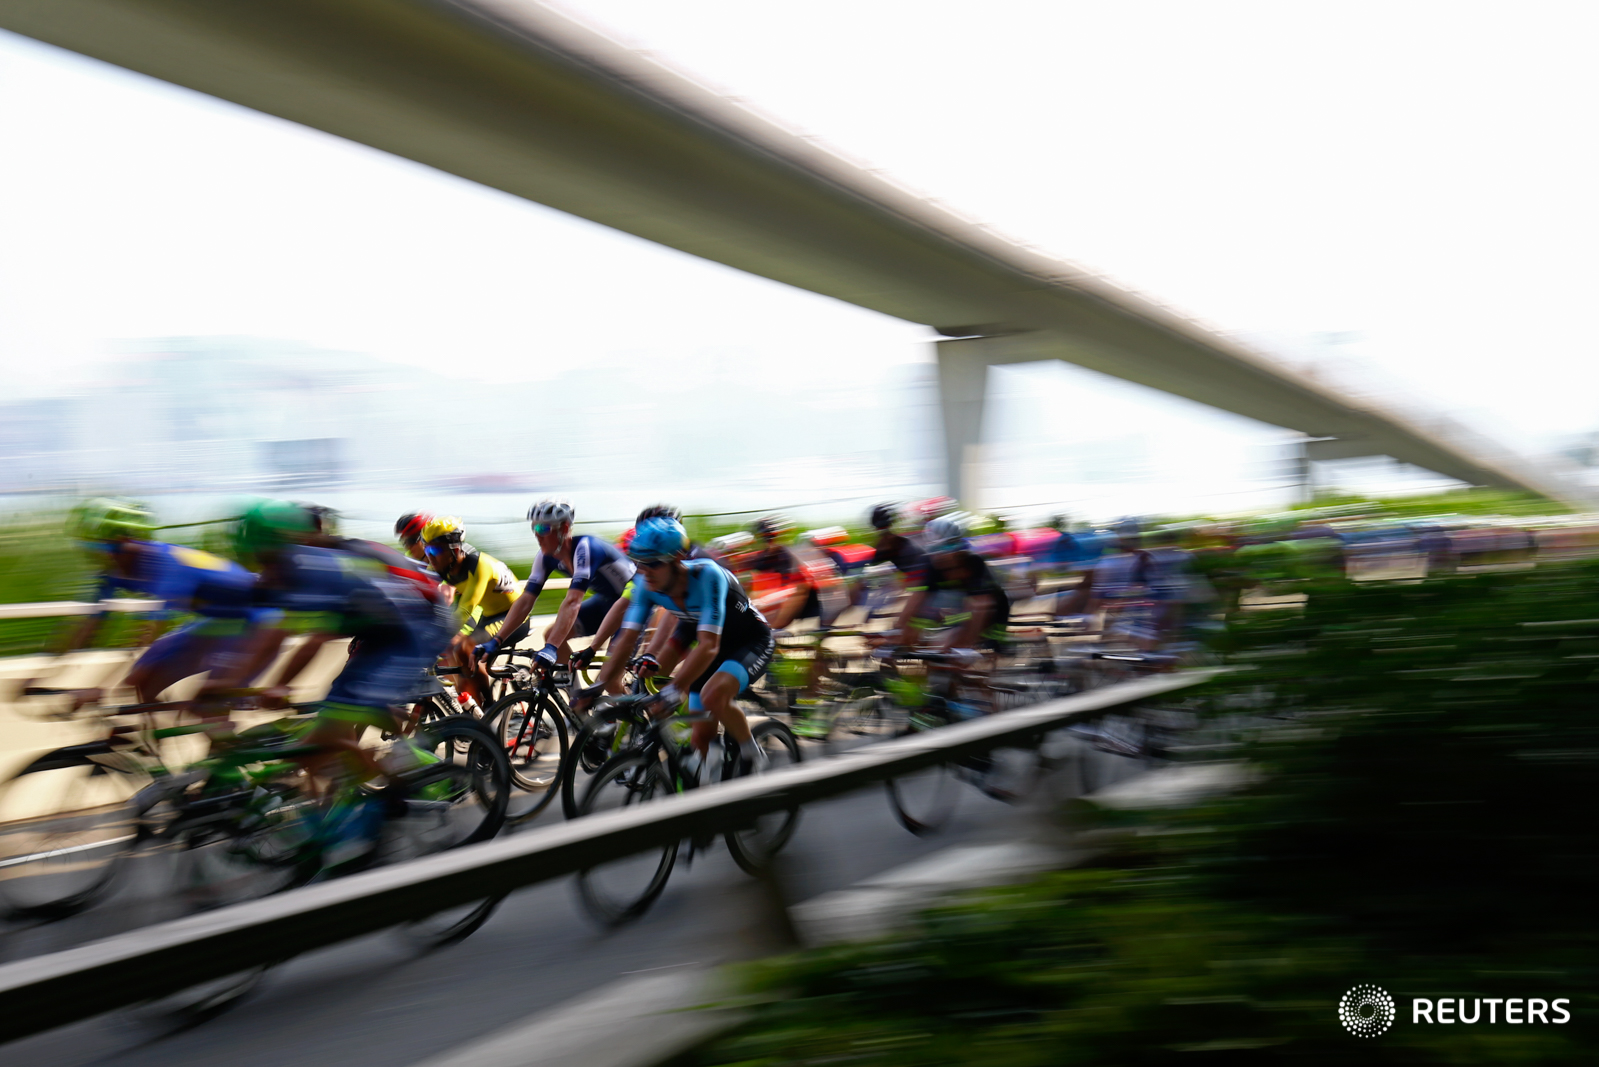 Cycling - Hong Kong Cyclothon 2016 - Hong Kong - 25/09/16 Competitors in action during the International Criterium. The Hong Kong Cyclothon is the biggest cycling event in Hong Kong and features four races and five cycling activities. REUTERS/Yong Teck Lim